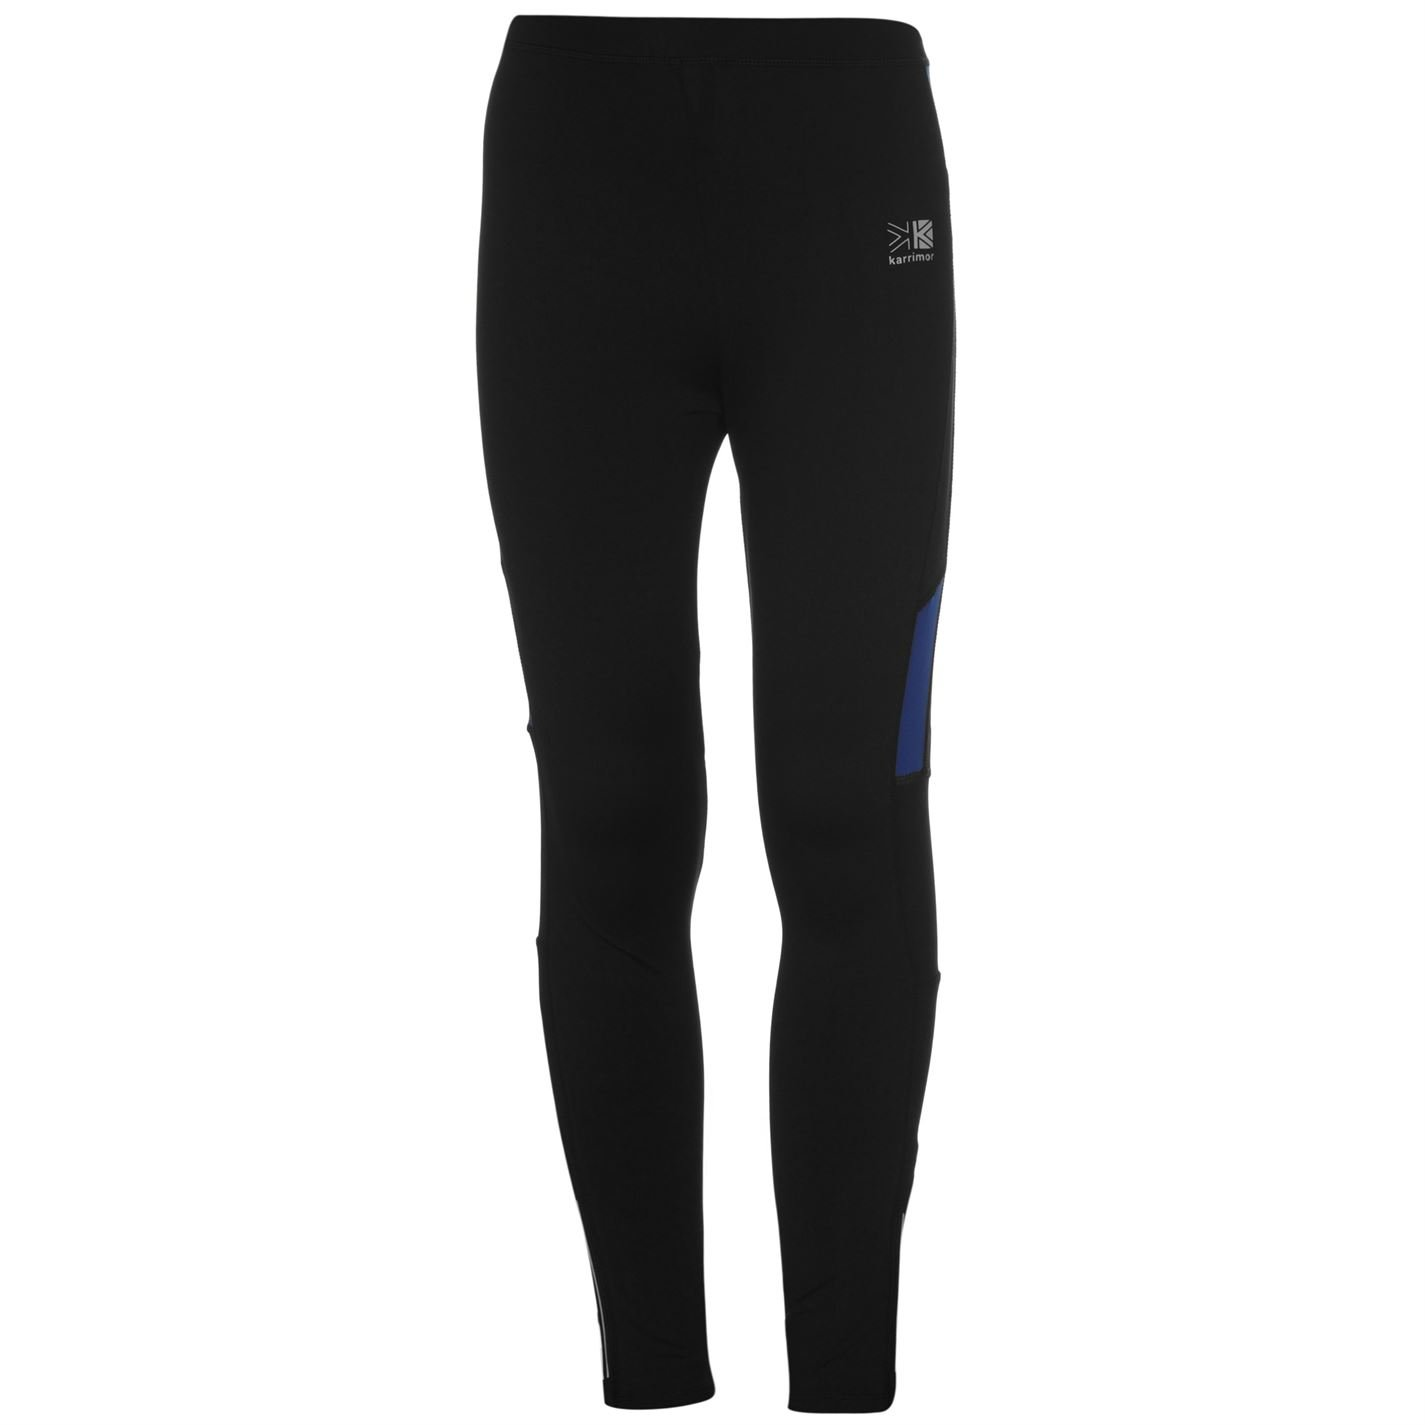 Karrimor Kids Running Tights